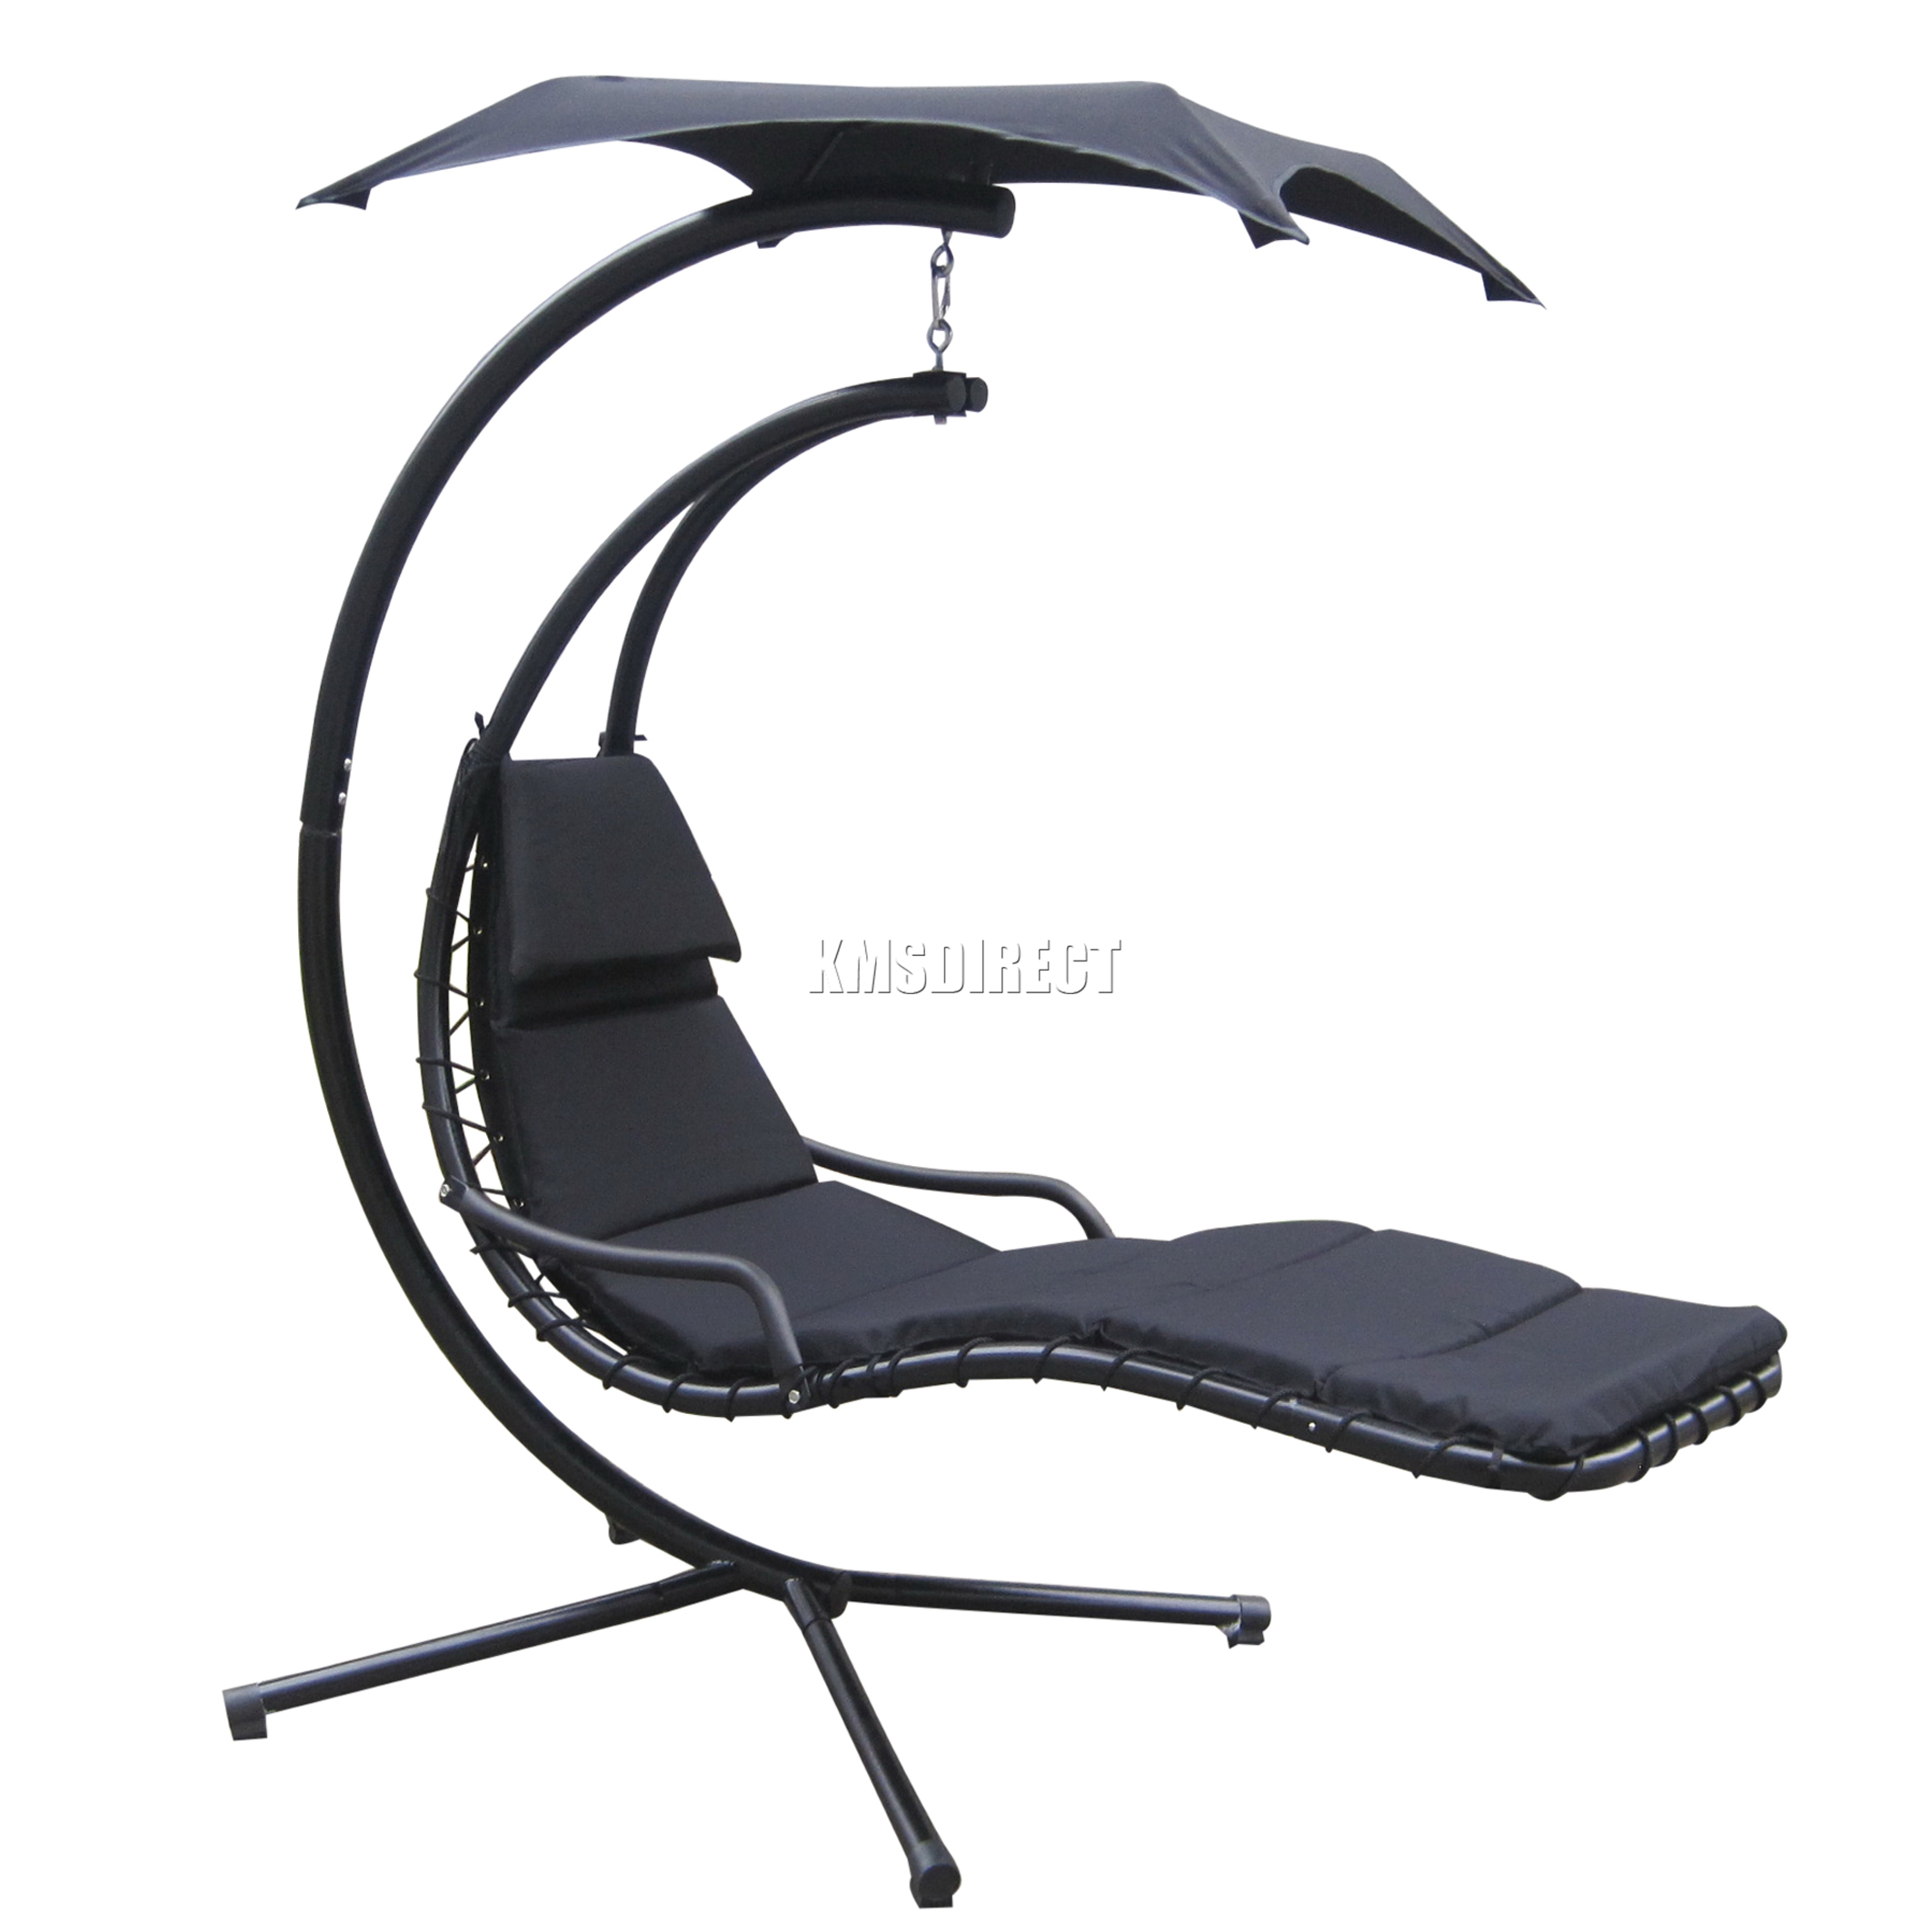 foxhunter garden outdoor helicopter dream chair swing hammock